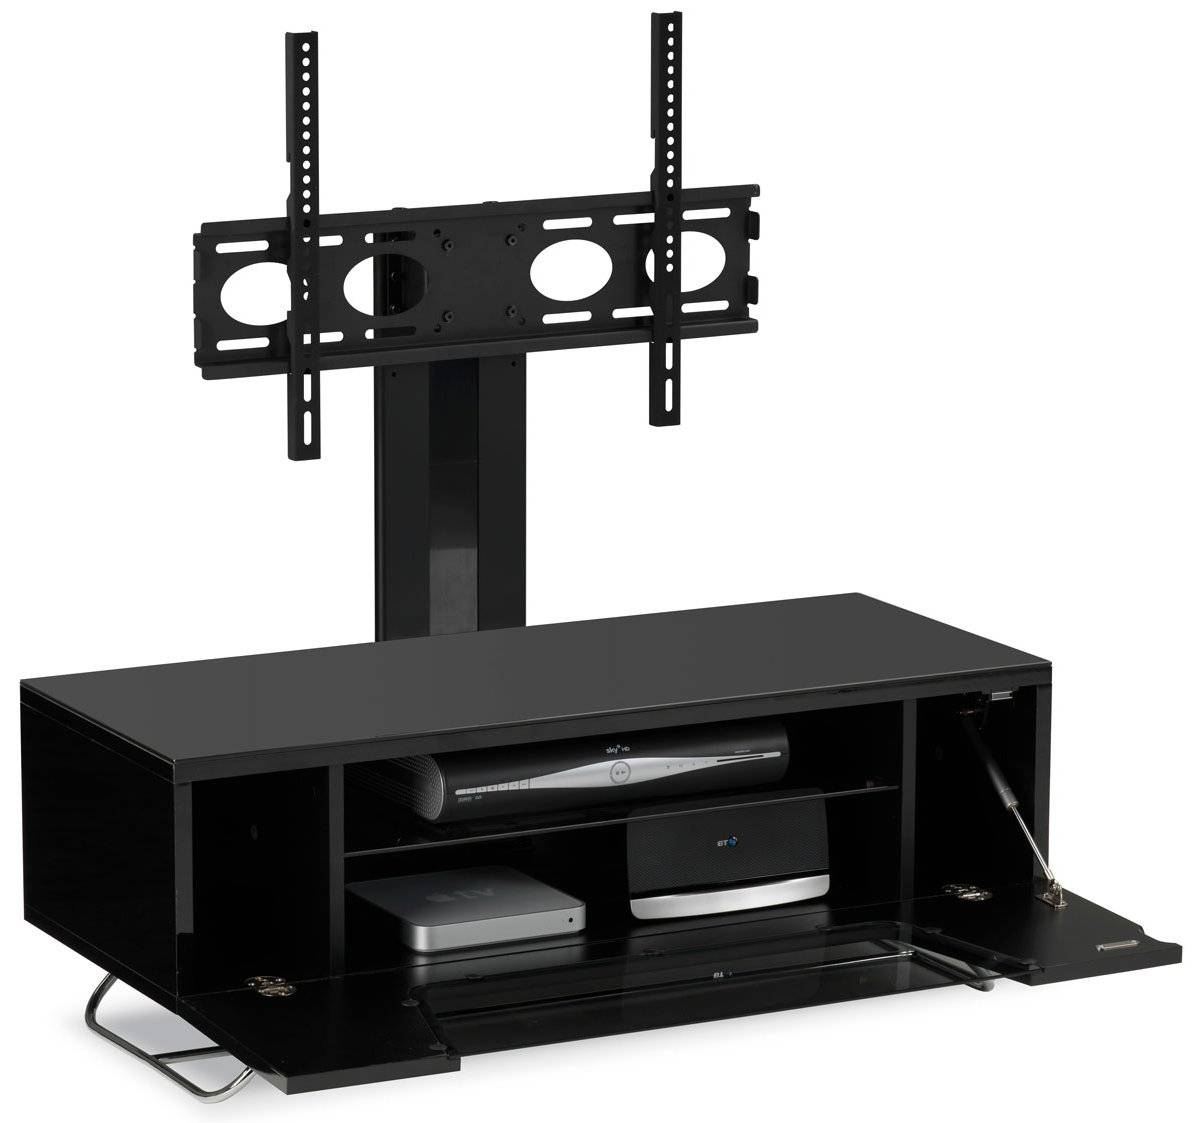 Alphason Chromium Black Cantilever Tv Stand throughout Cantilever Tv Stands (Image 1 of 15)